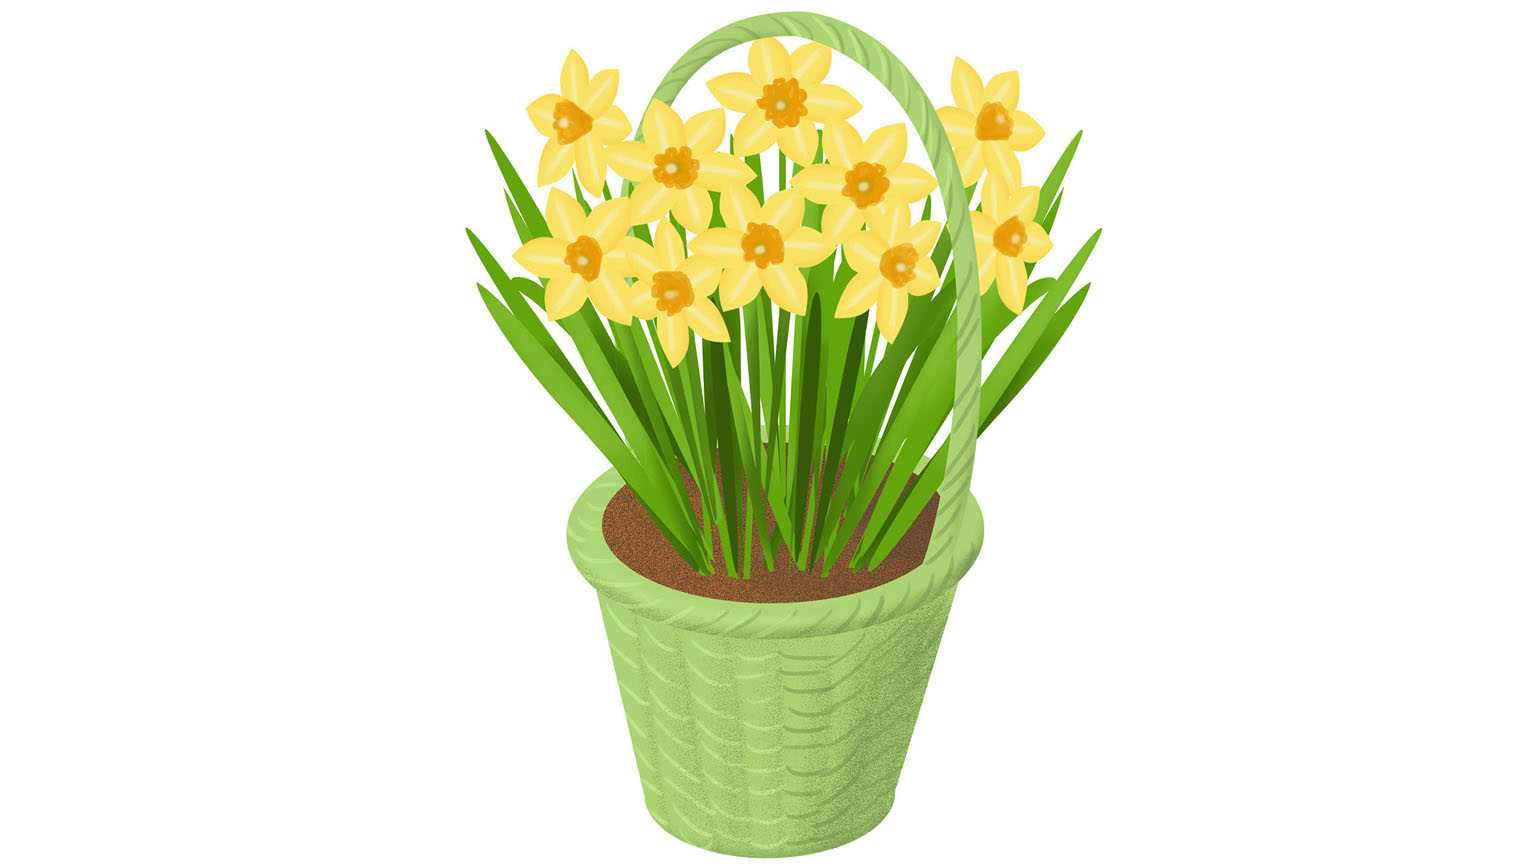 A green basket full of blooming daffodils.